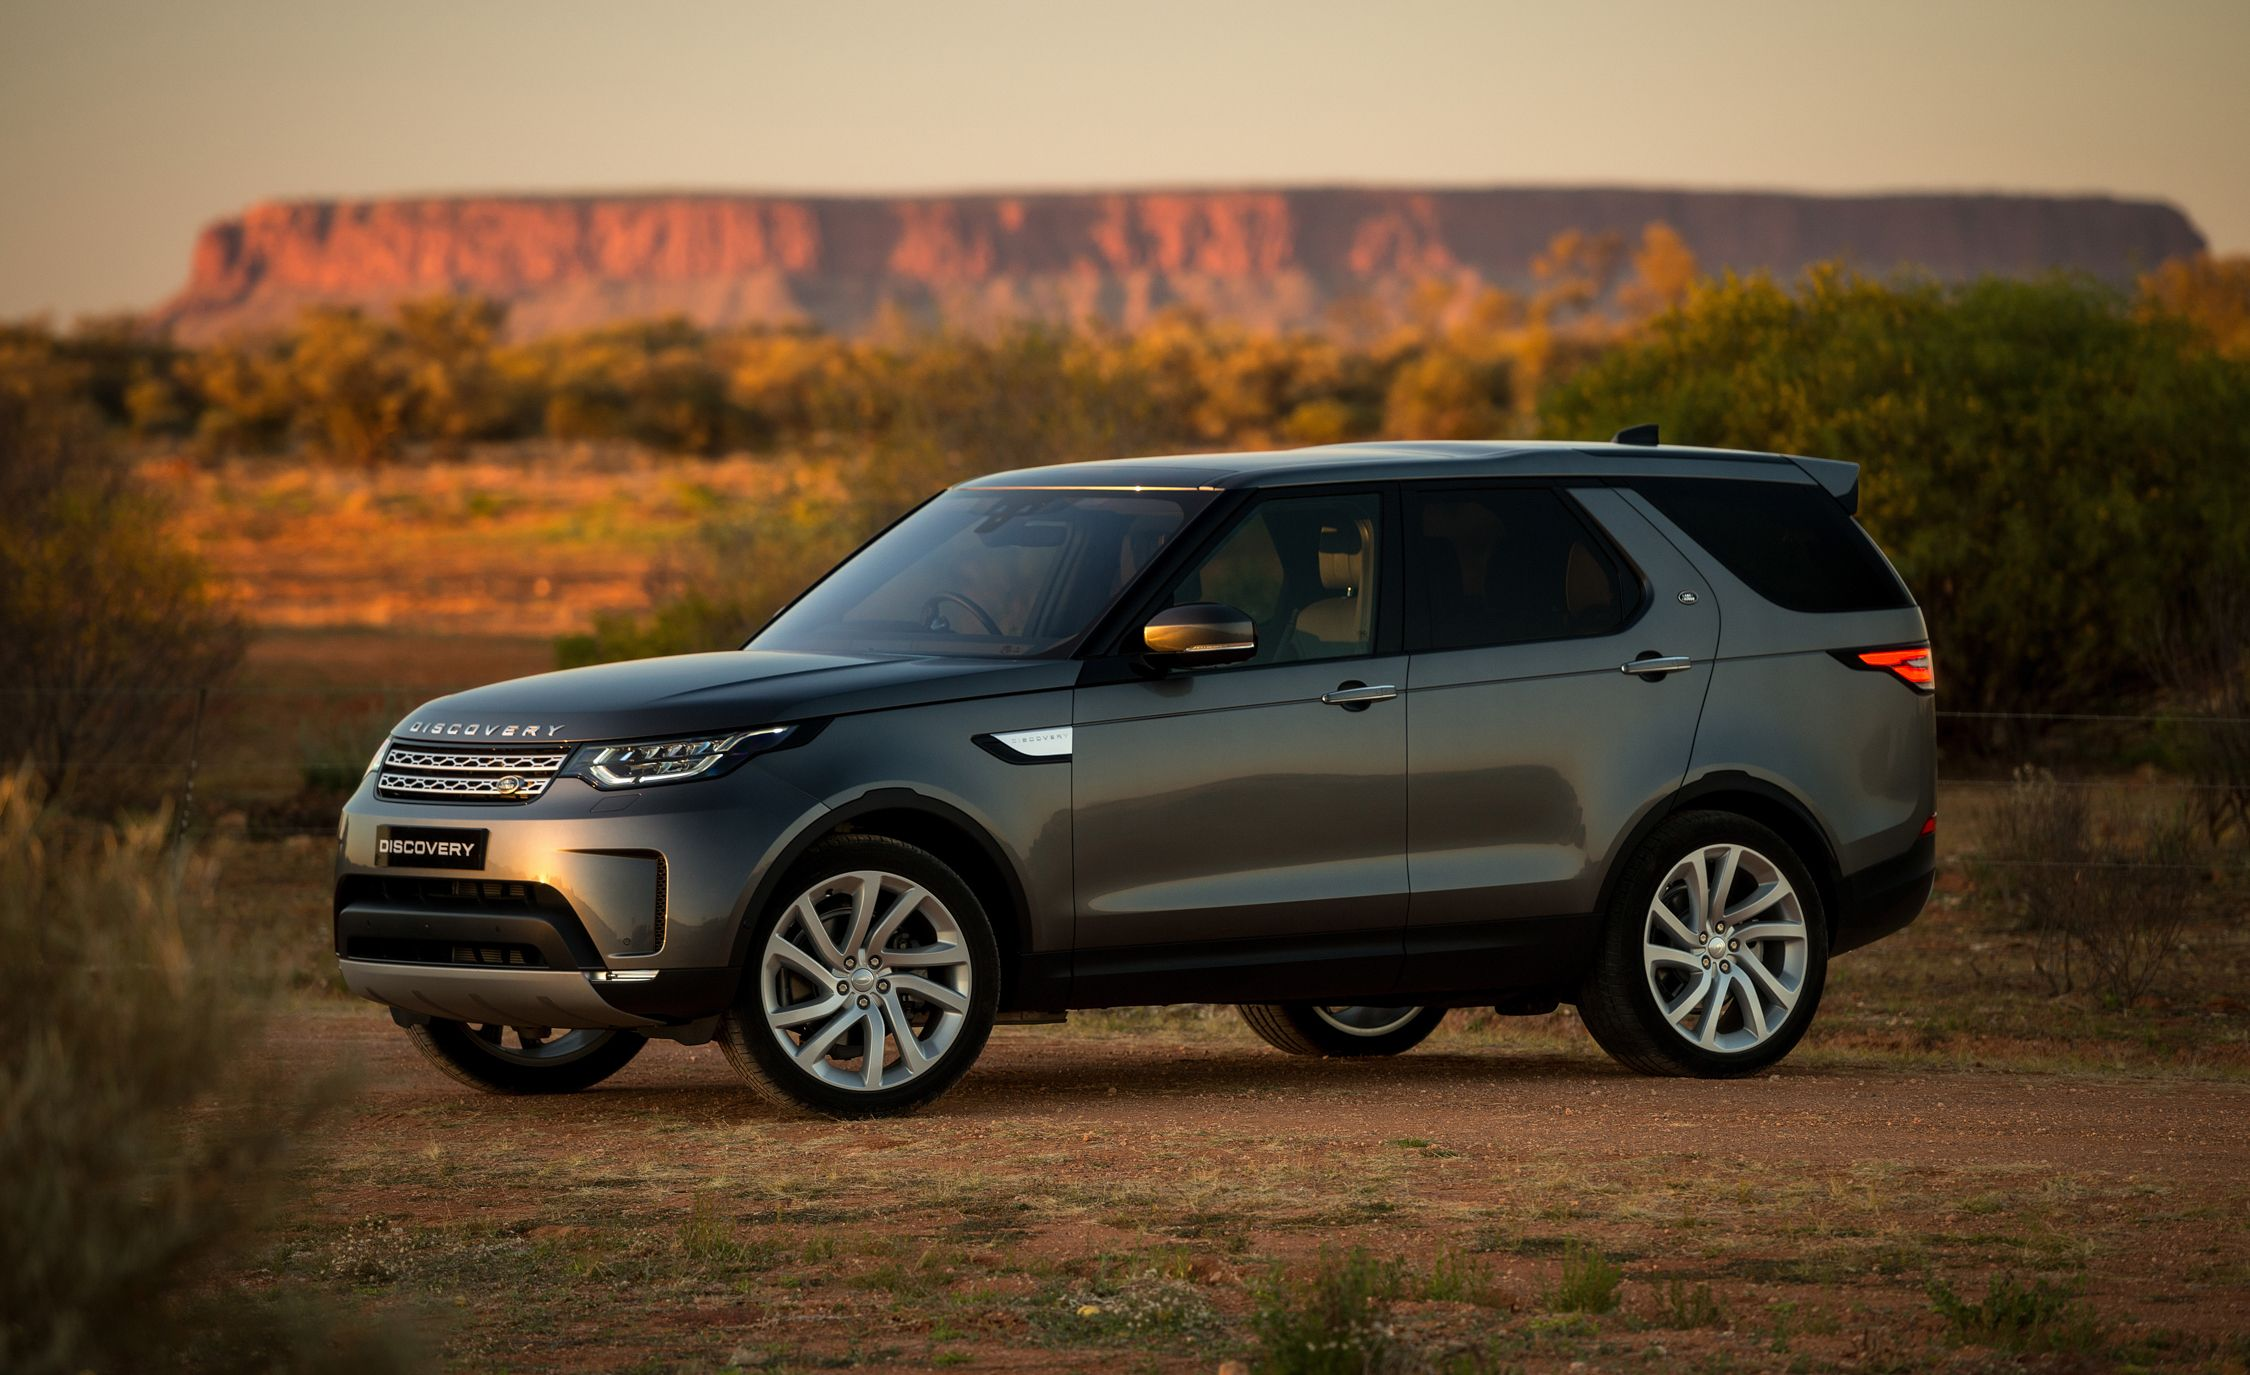 2018 Land Rover Discovery Gallery